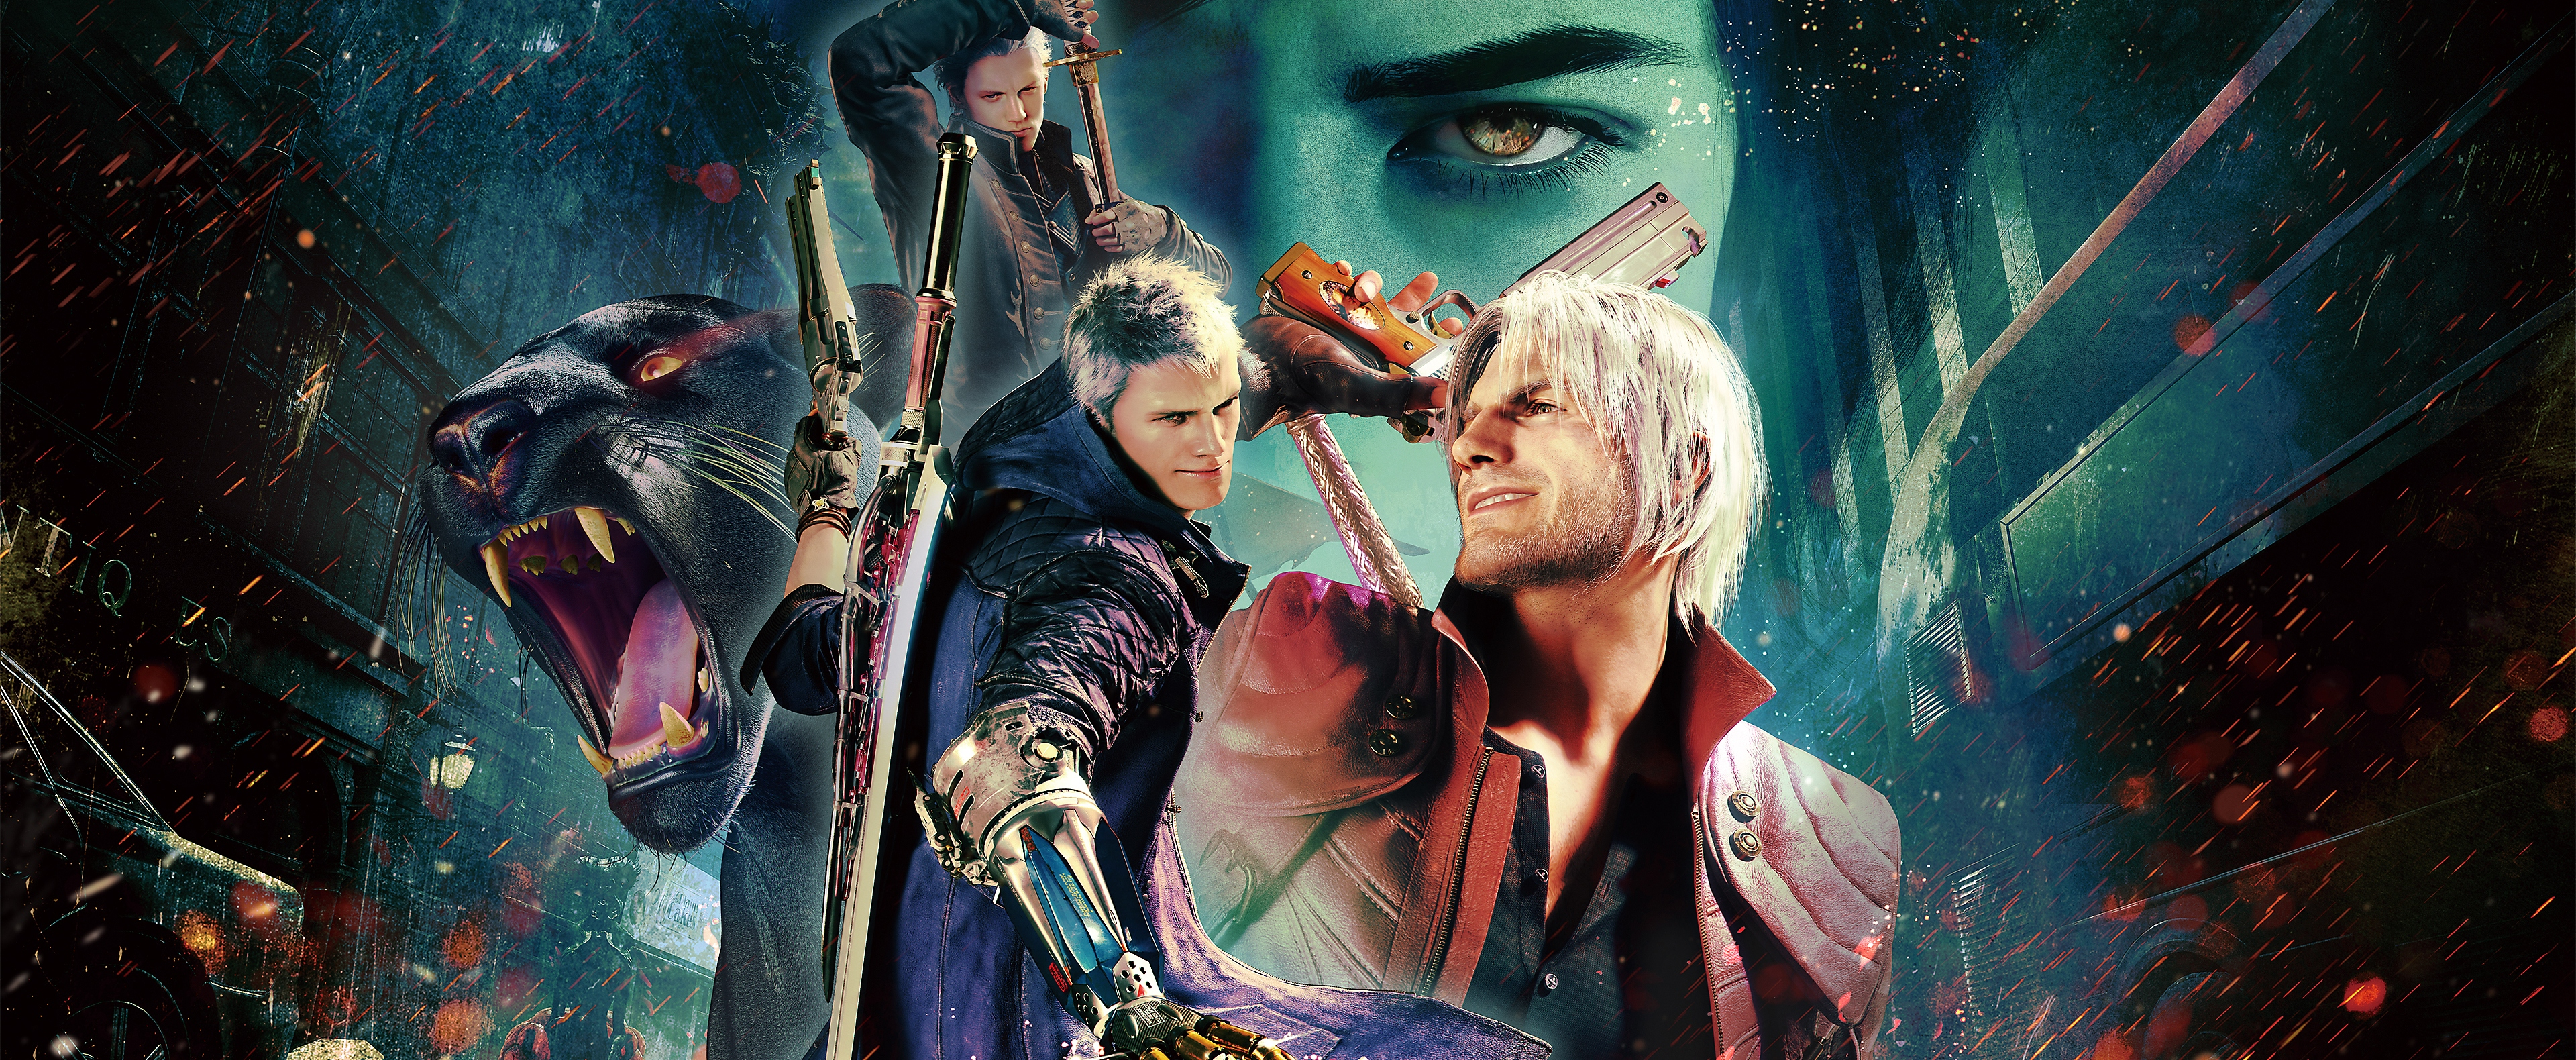 Devil May Cry 5: Special Edition - Key Art